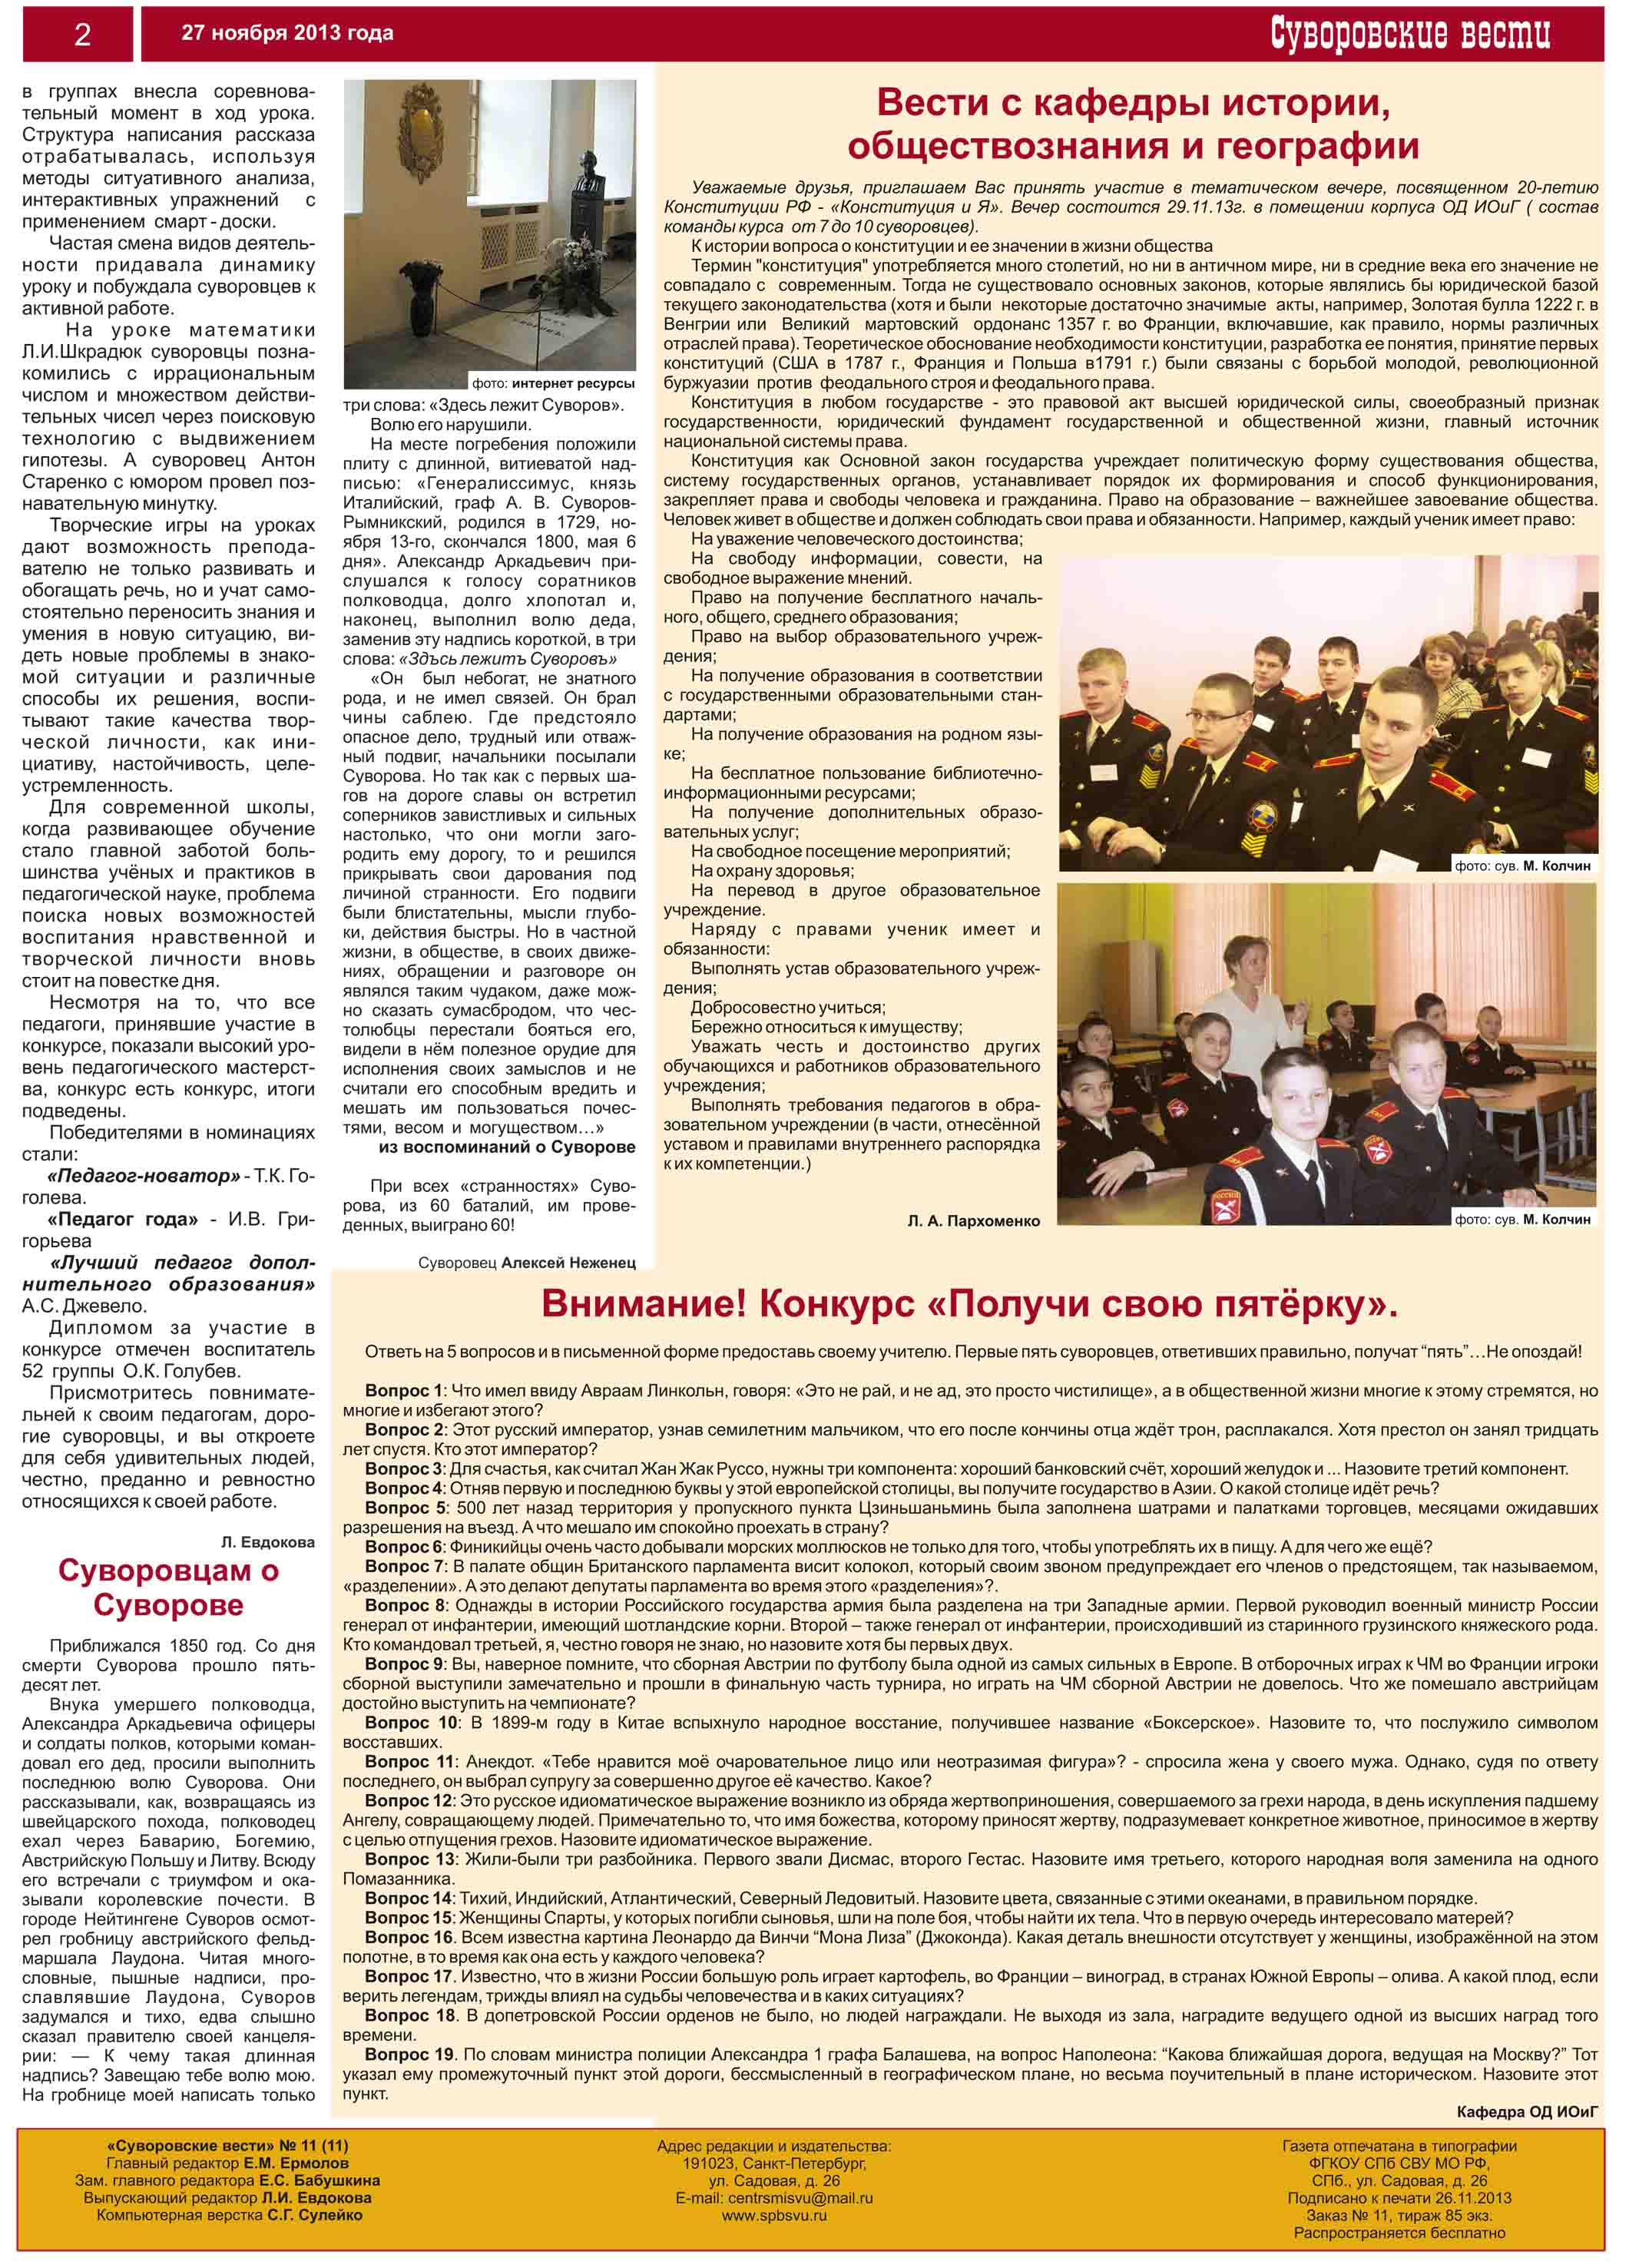 newsPaper_11.cdr